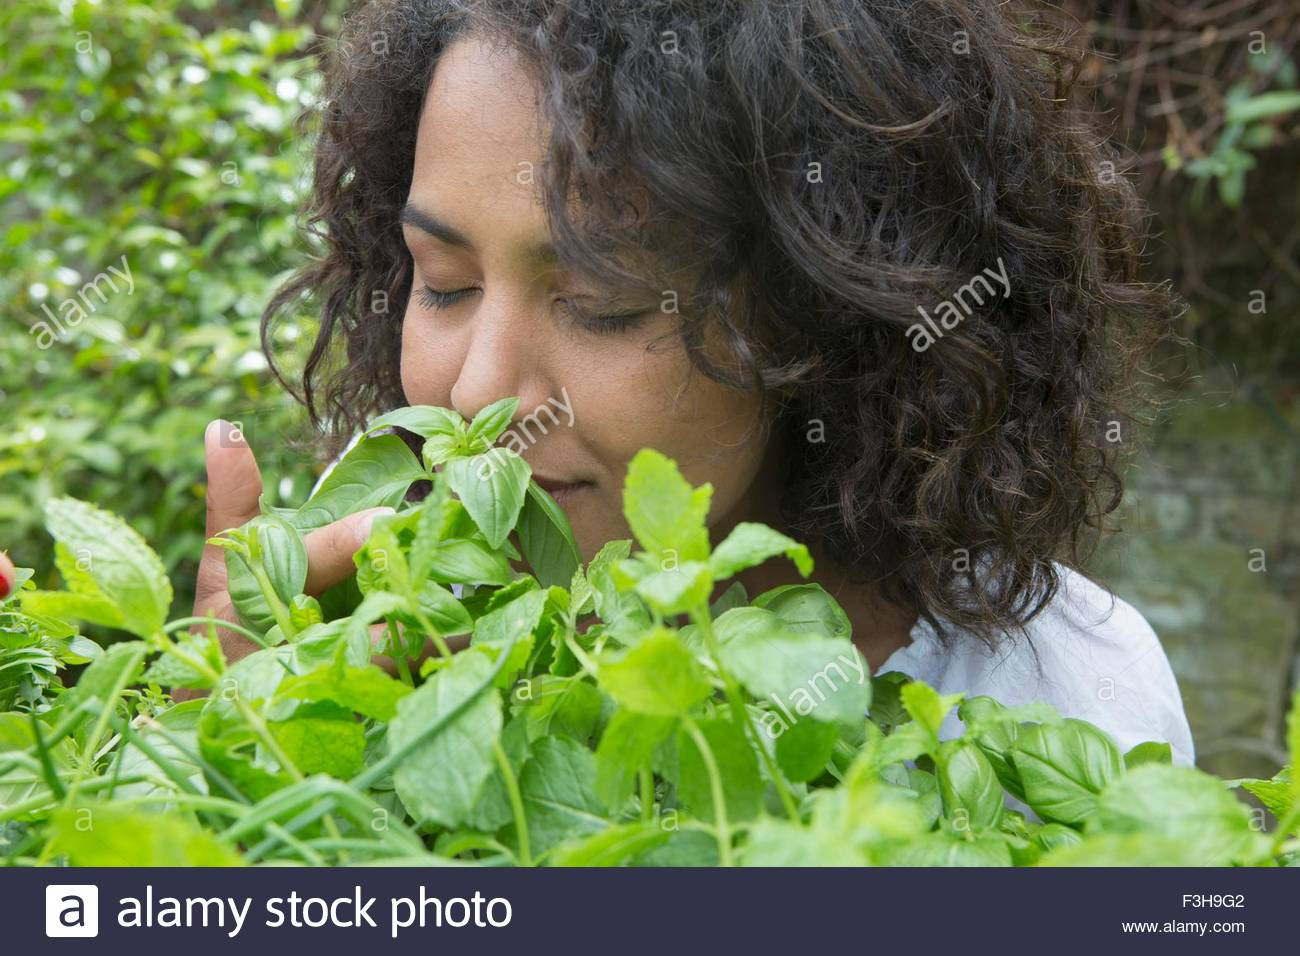 Mid adult woman smelling herbs in garden - Stock Image